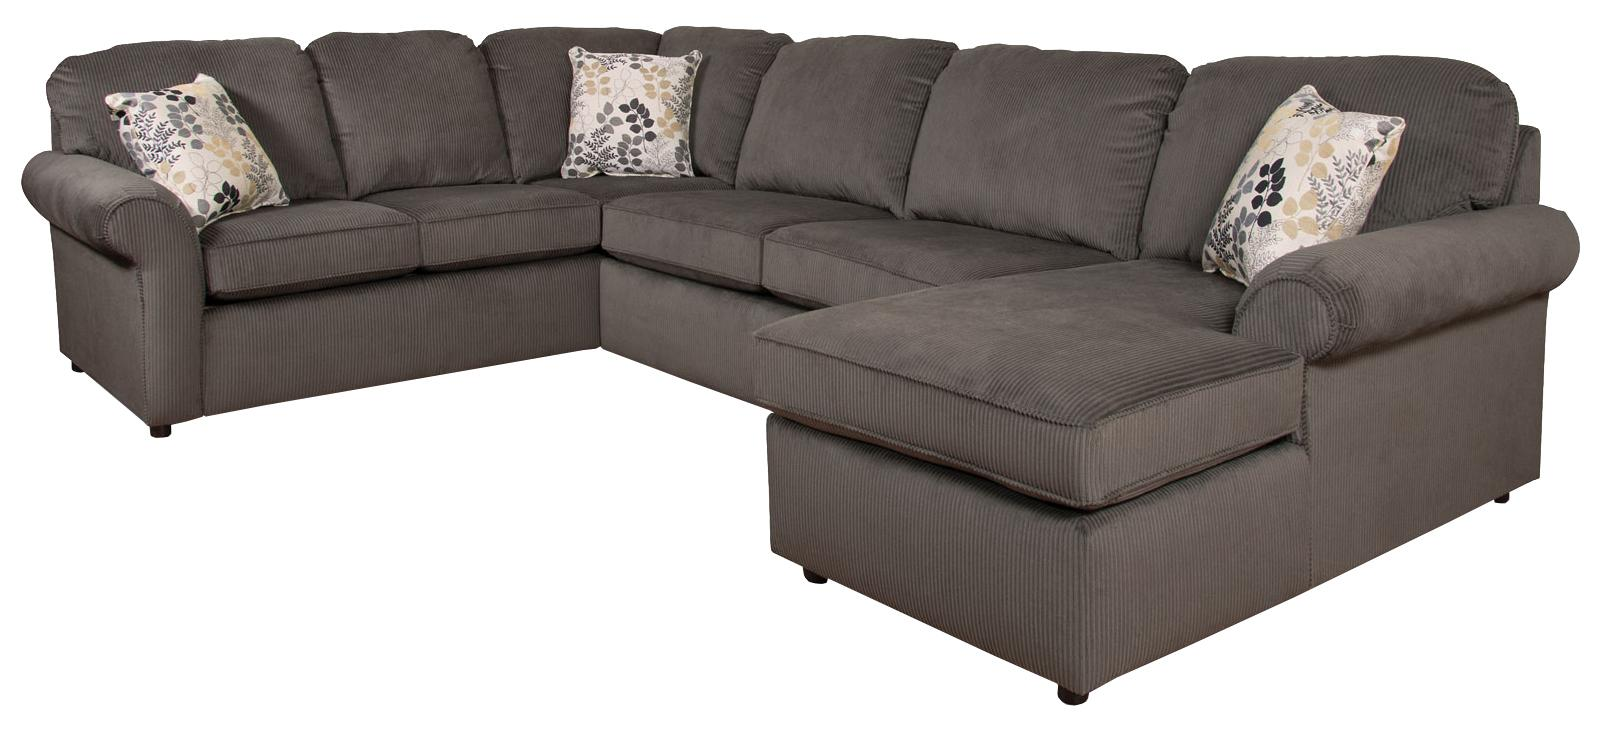 England malibu 5 6 seat right side chaise sectional sofa for Couch furniture